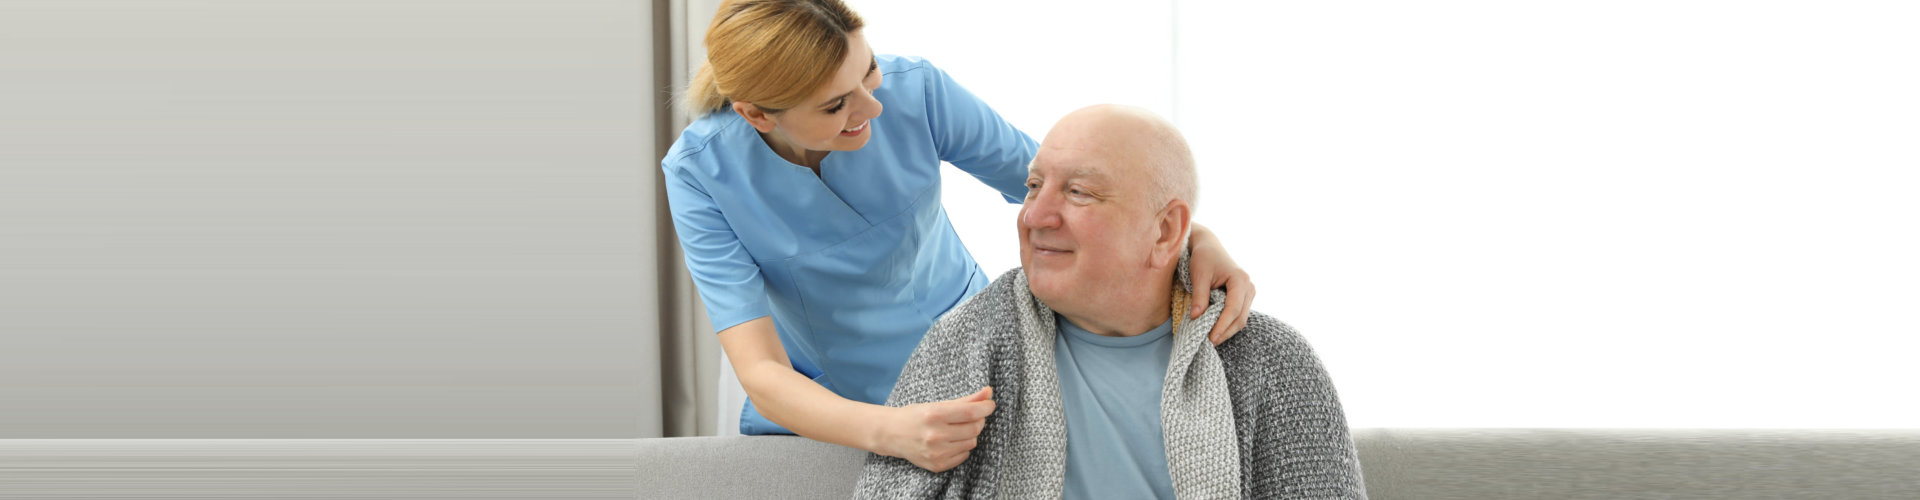 caregiver giving blanket to senior man